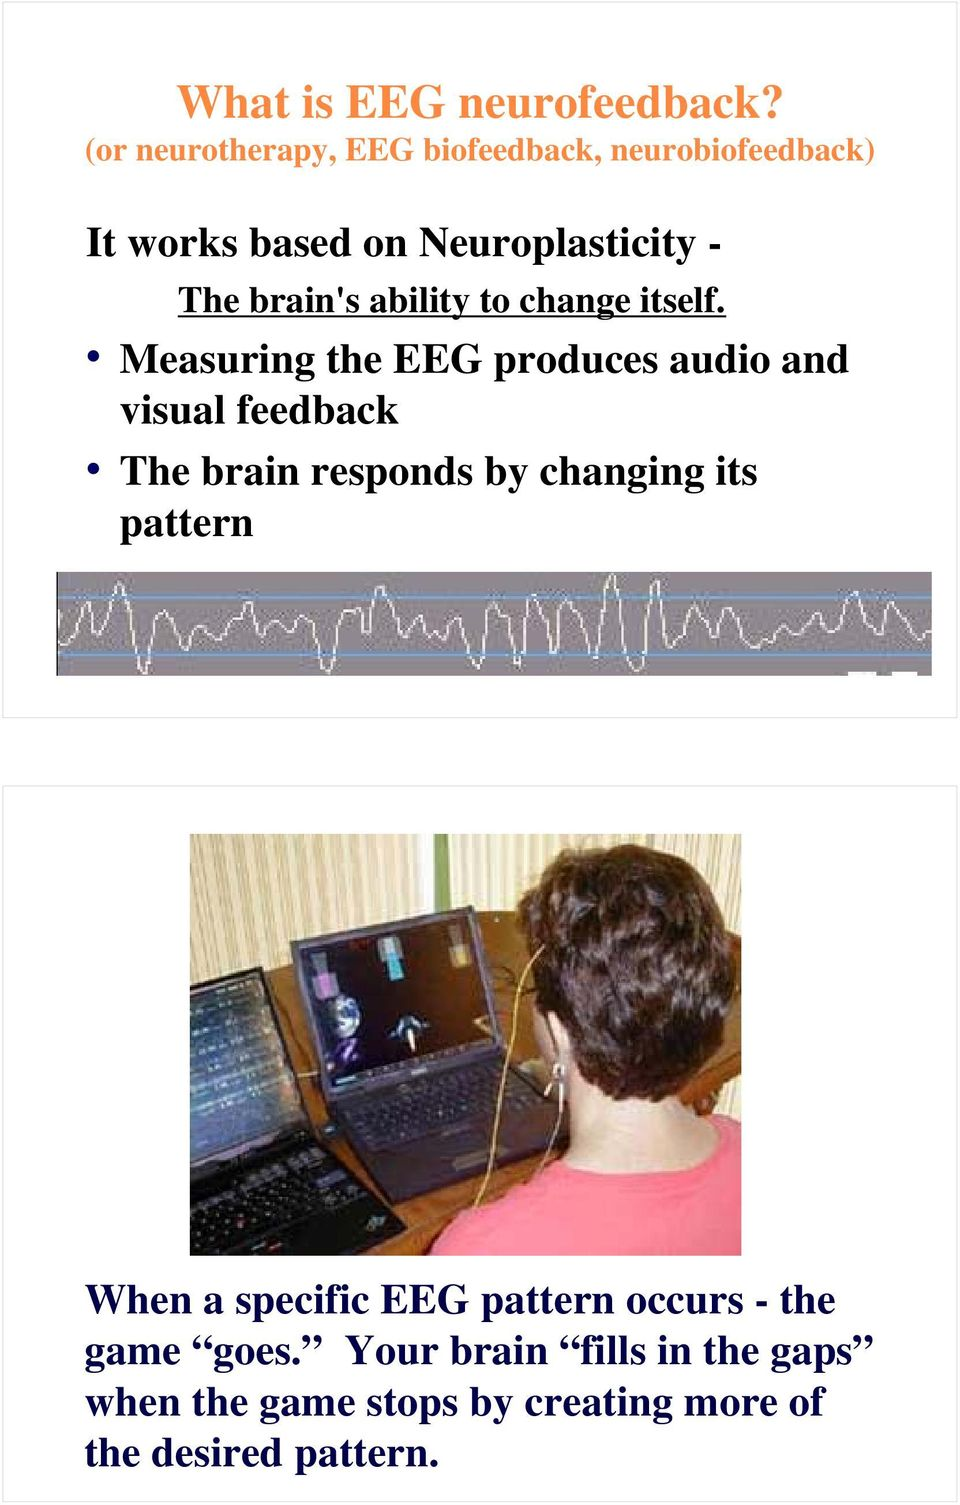 brain's ability to change itself.